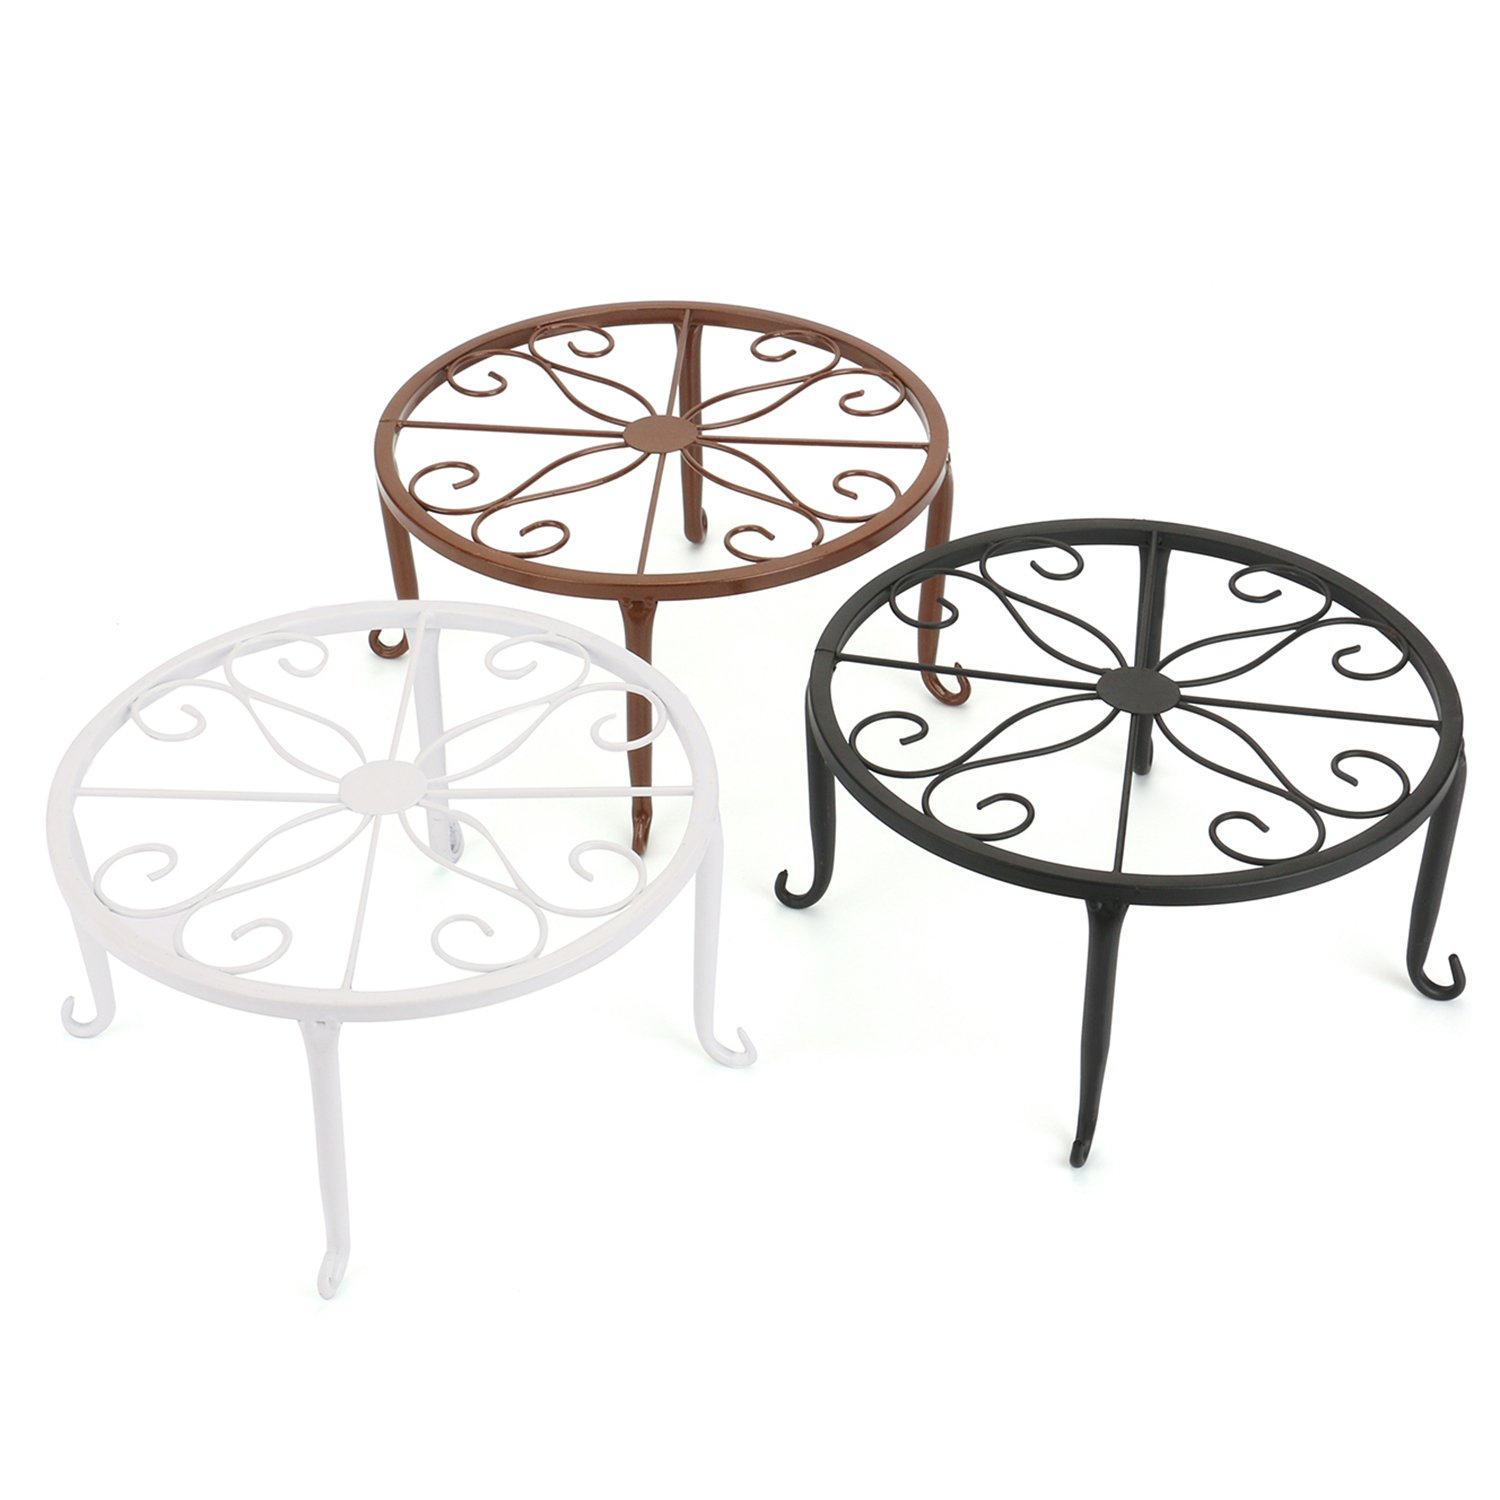 Tosnail Olde Metal/Iron Art Plant Stands Pot Holder, 9'', Pack of 3 Colors, White, Black & Brown